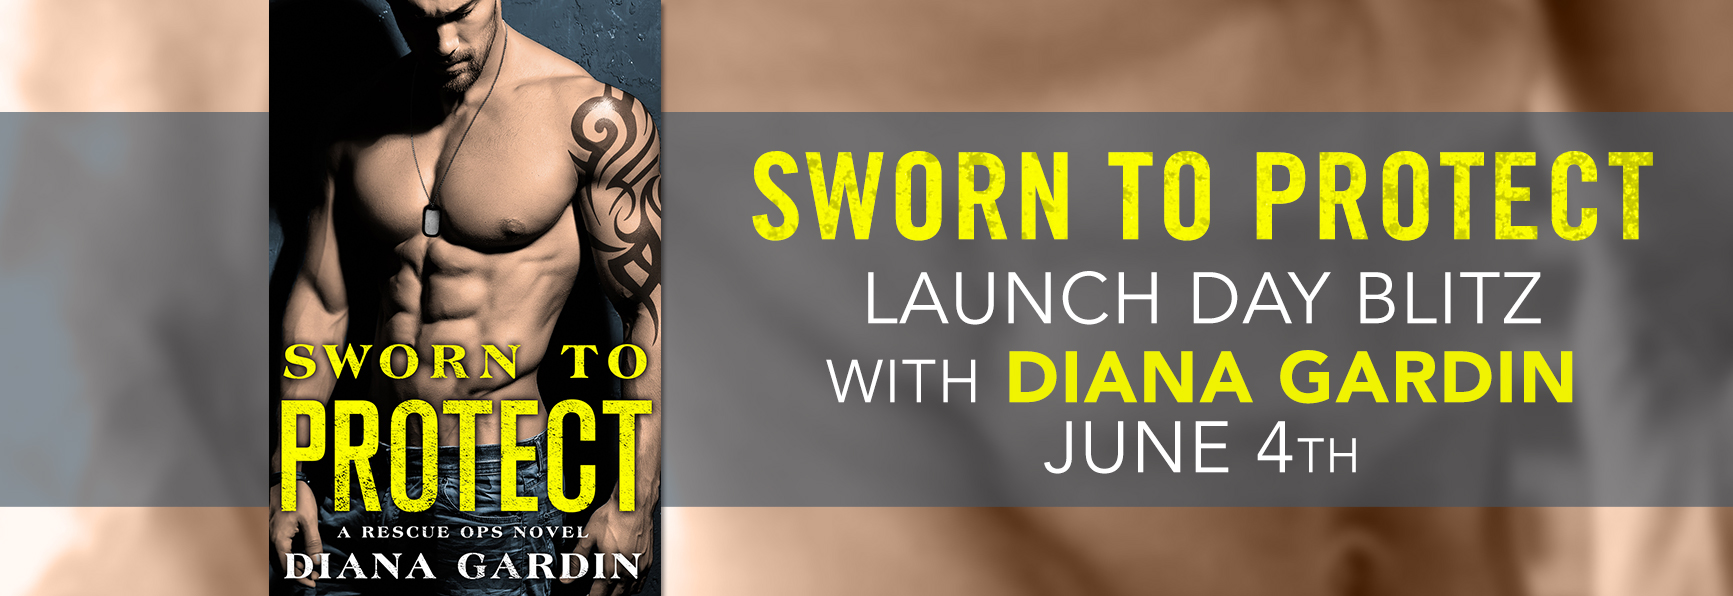 SPOTLIGHT/GIVEAWAY: 'Sworn to Protect' by Diana Gardin